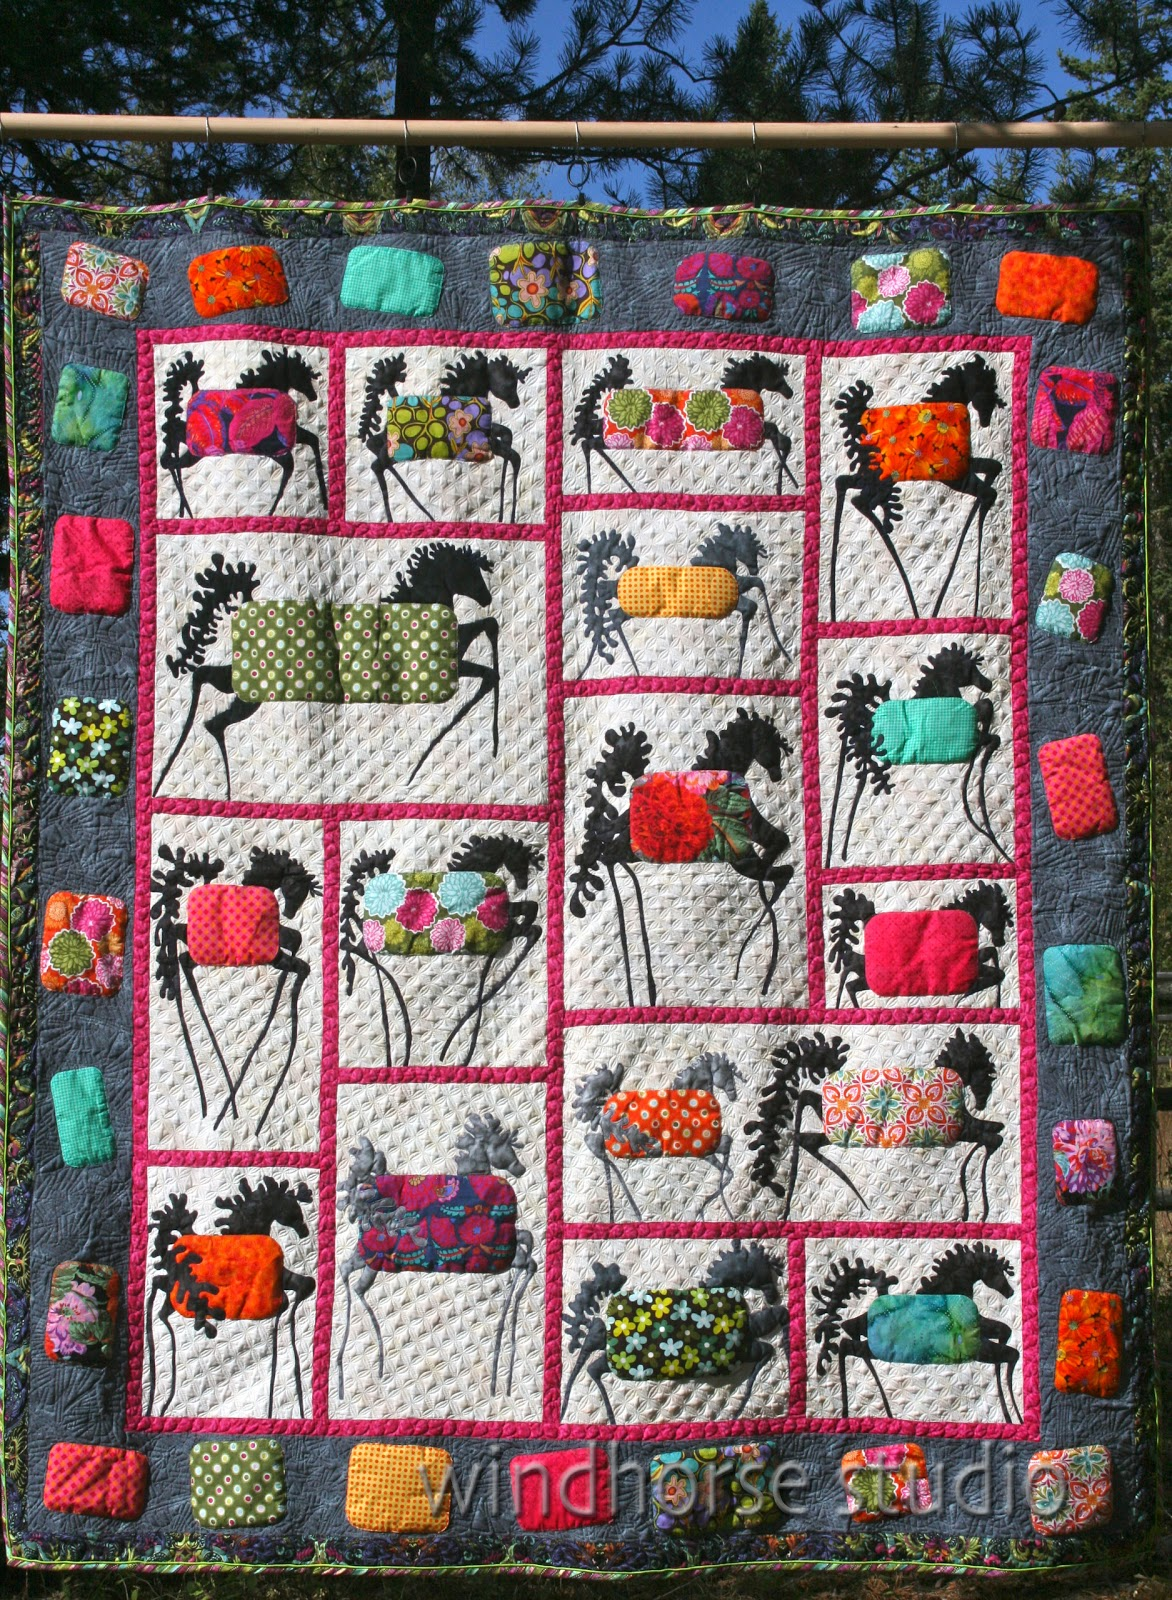 Quilt Patterns With Horses : adventures in life: farm horses quilt is finished